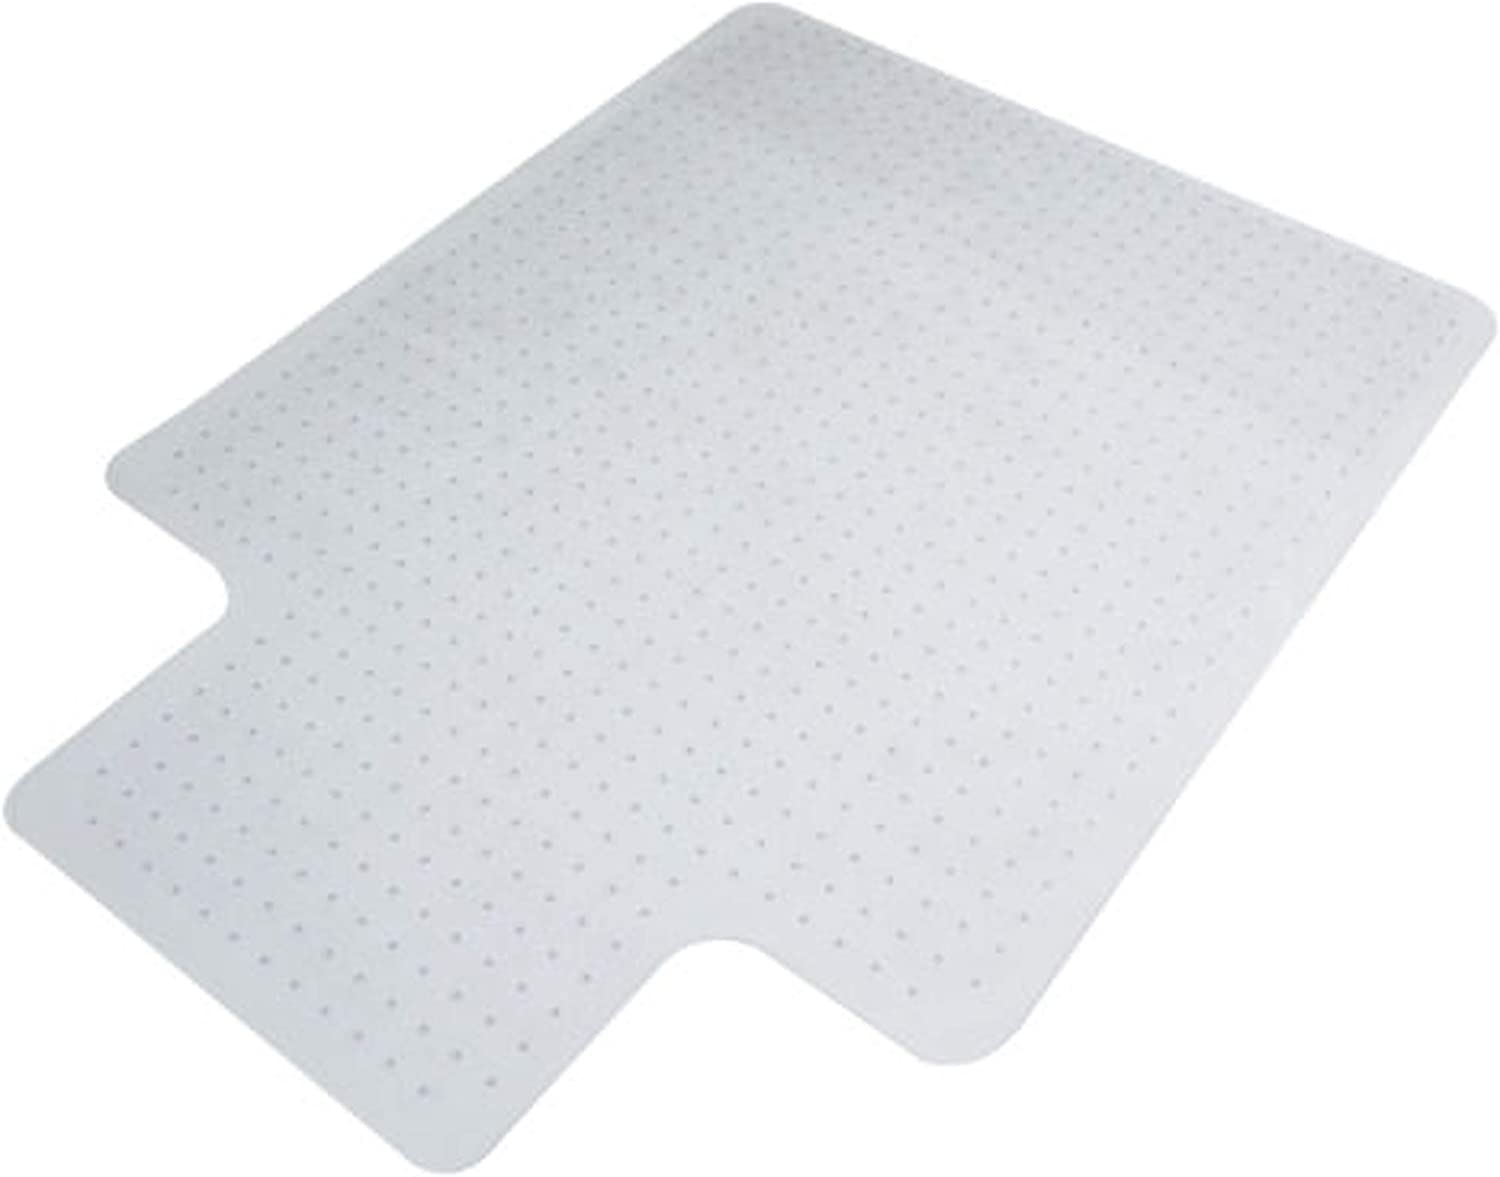 PVC Clear Floor Mat 36 x 48 Inches (3 feet x 4 feet) (Carpet, 1 Pack) (1 Pack for Carpet)